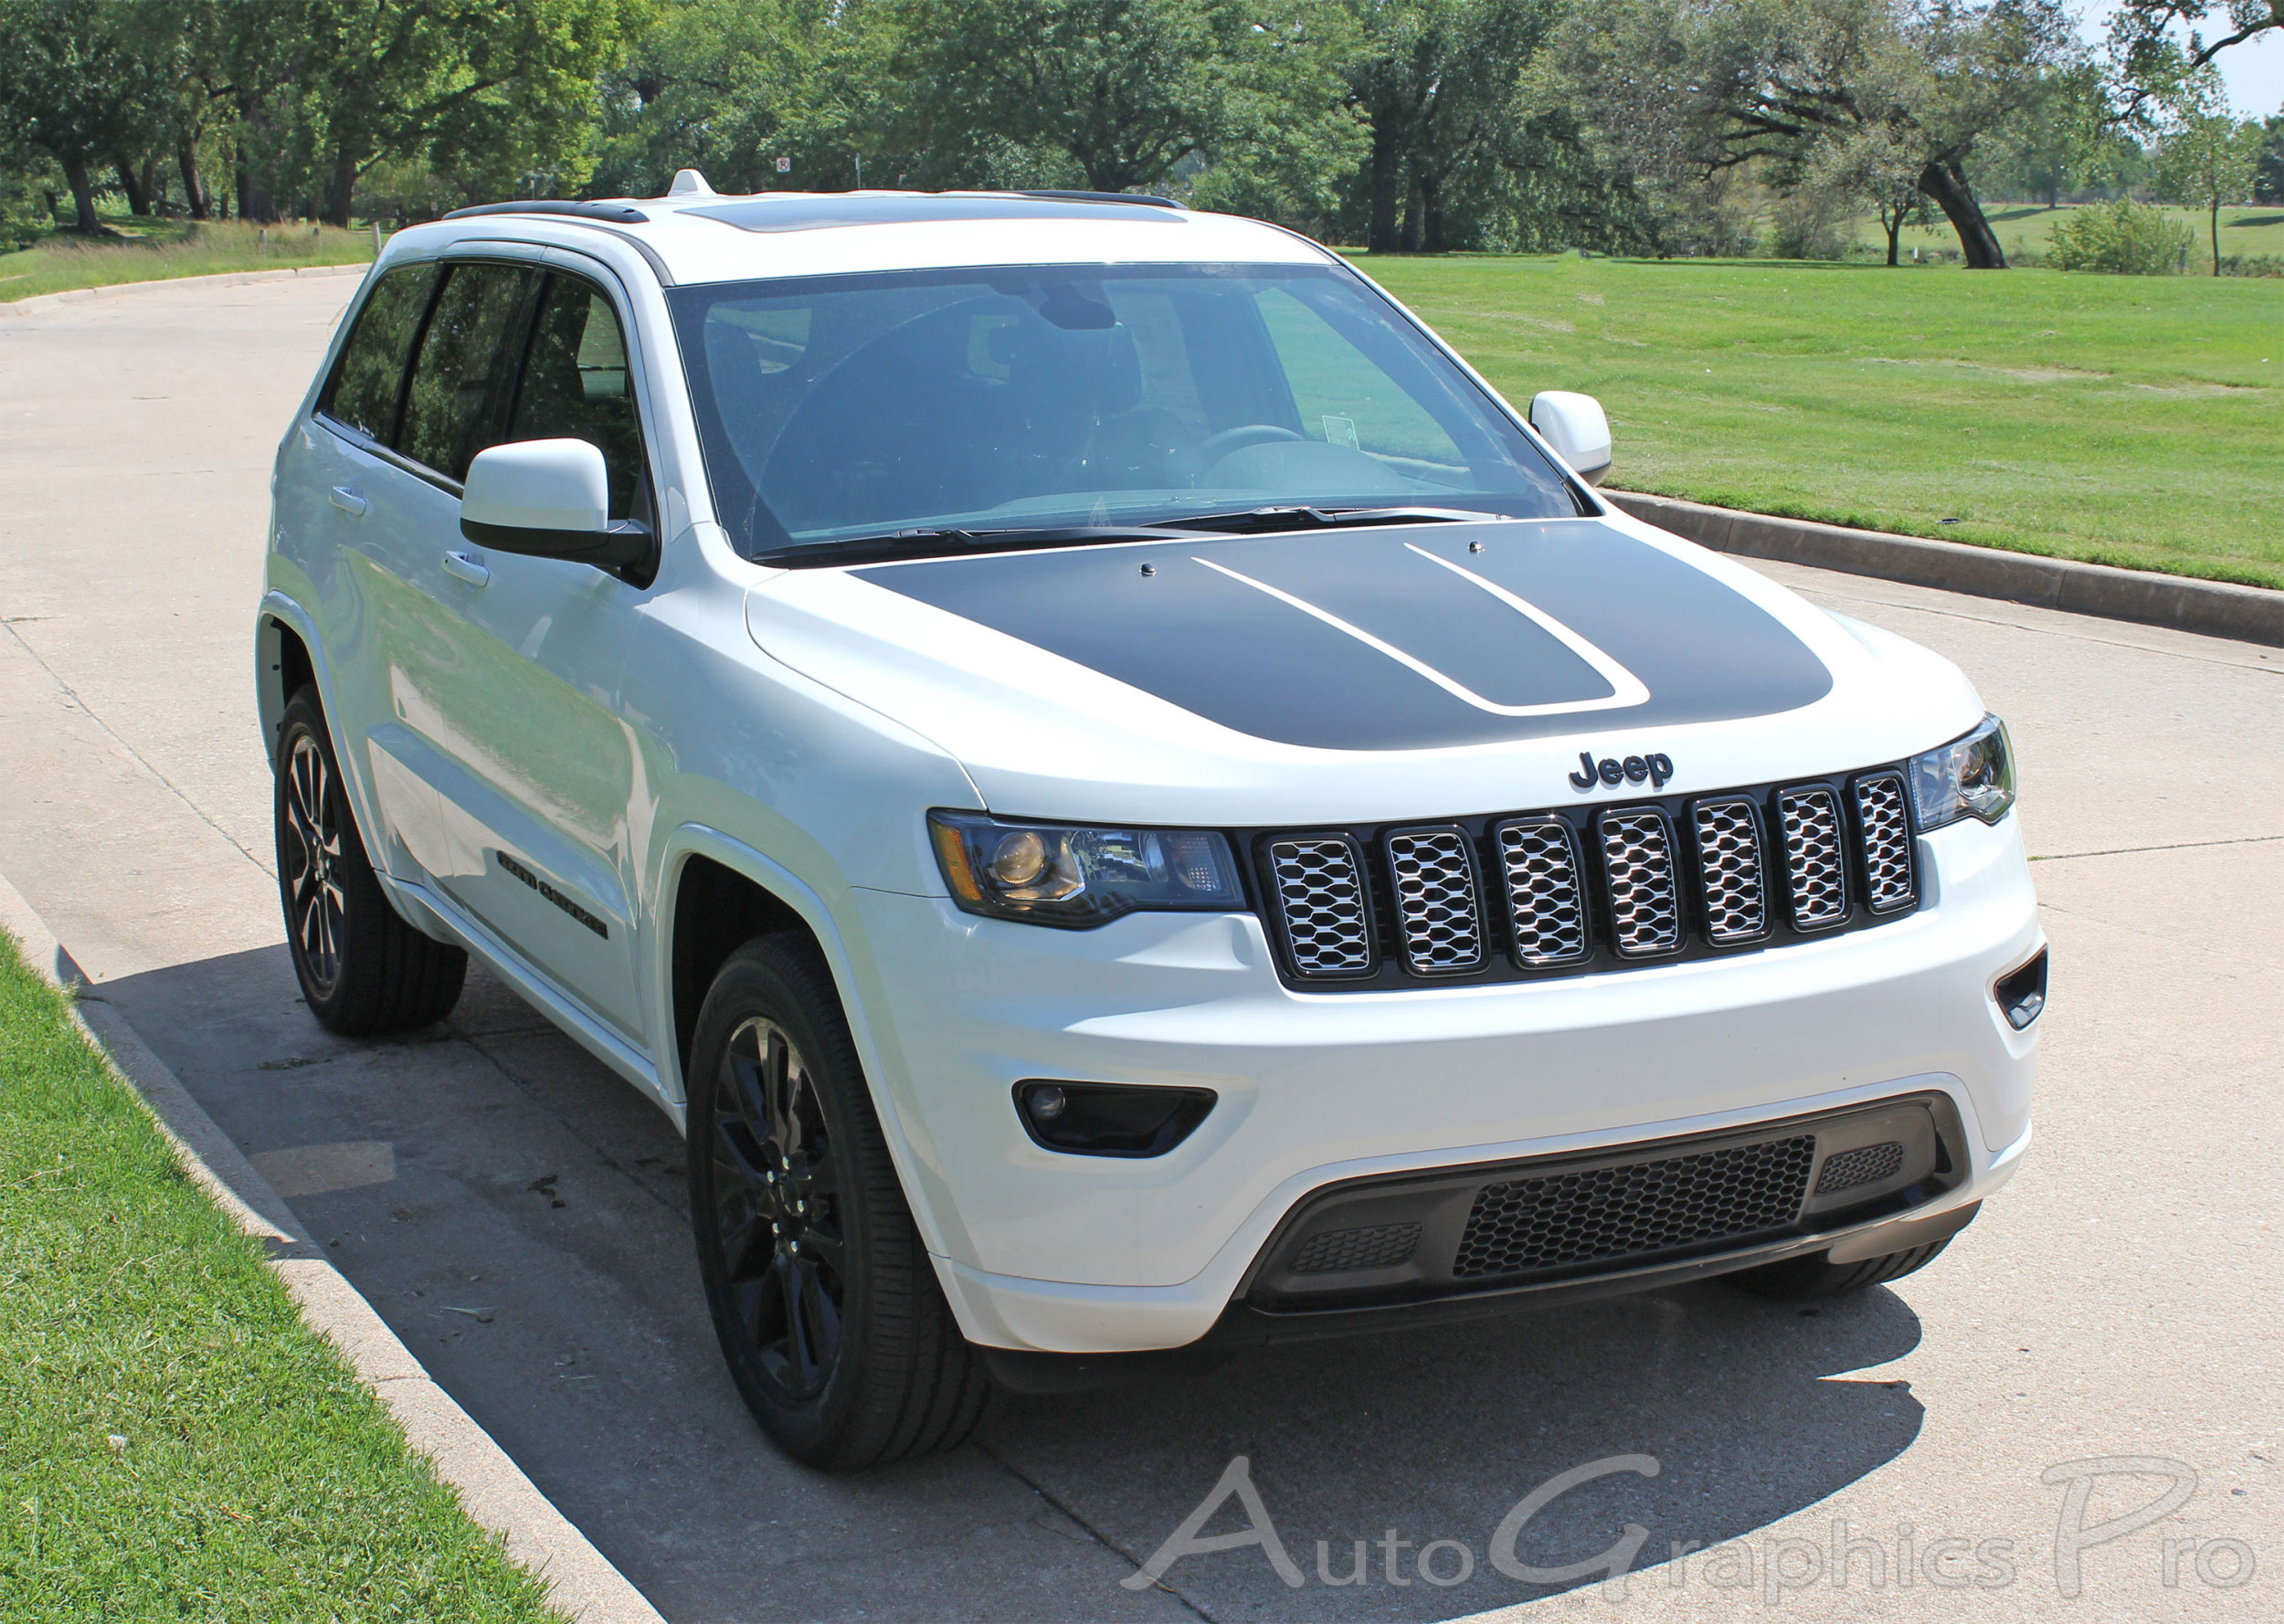 2011 2019 Jeep Grand Cherokee Trailhawk Hood Decal Trail Vinyl Graphic Stripes